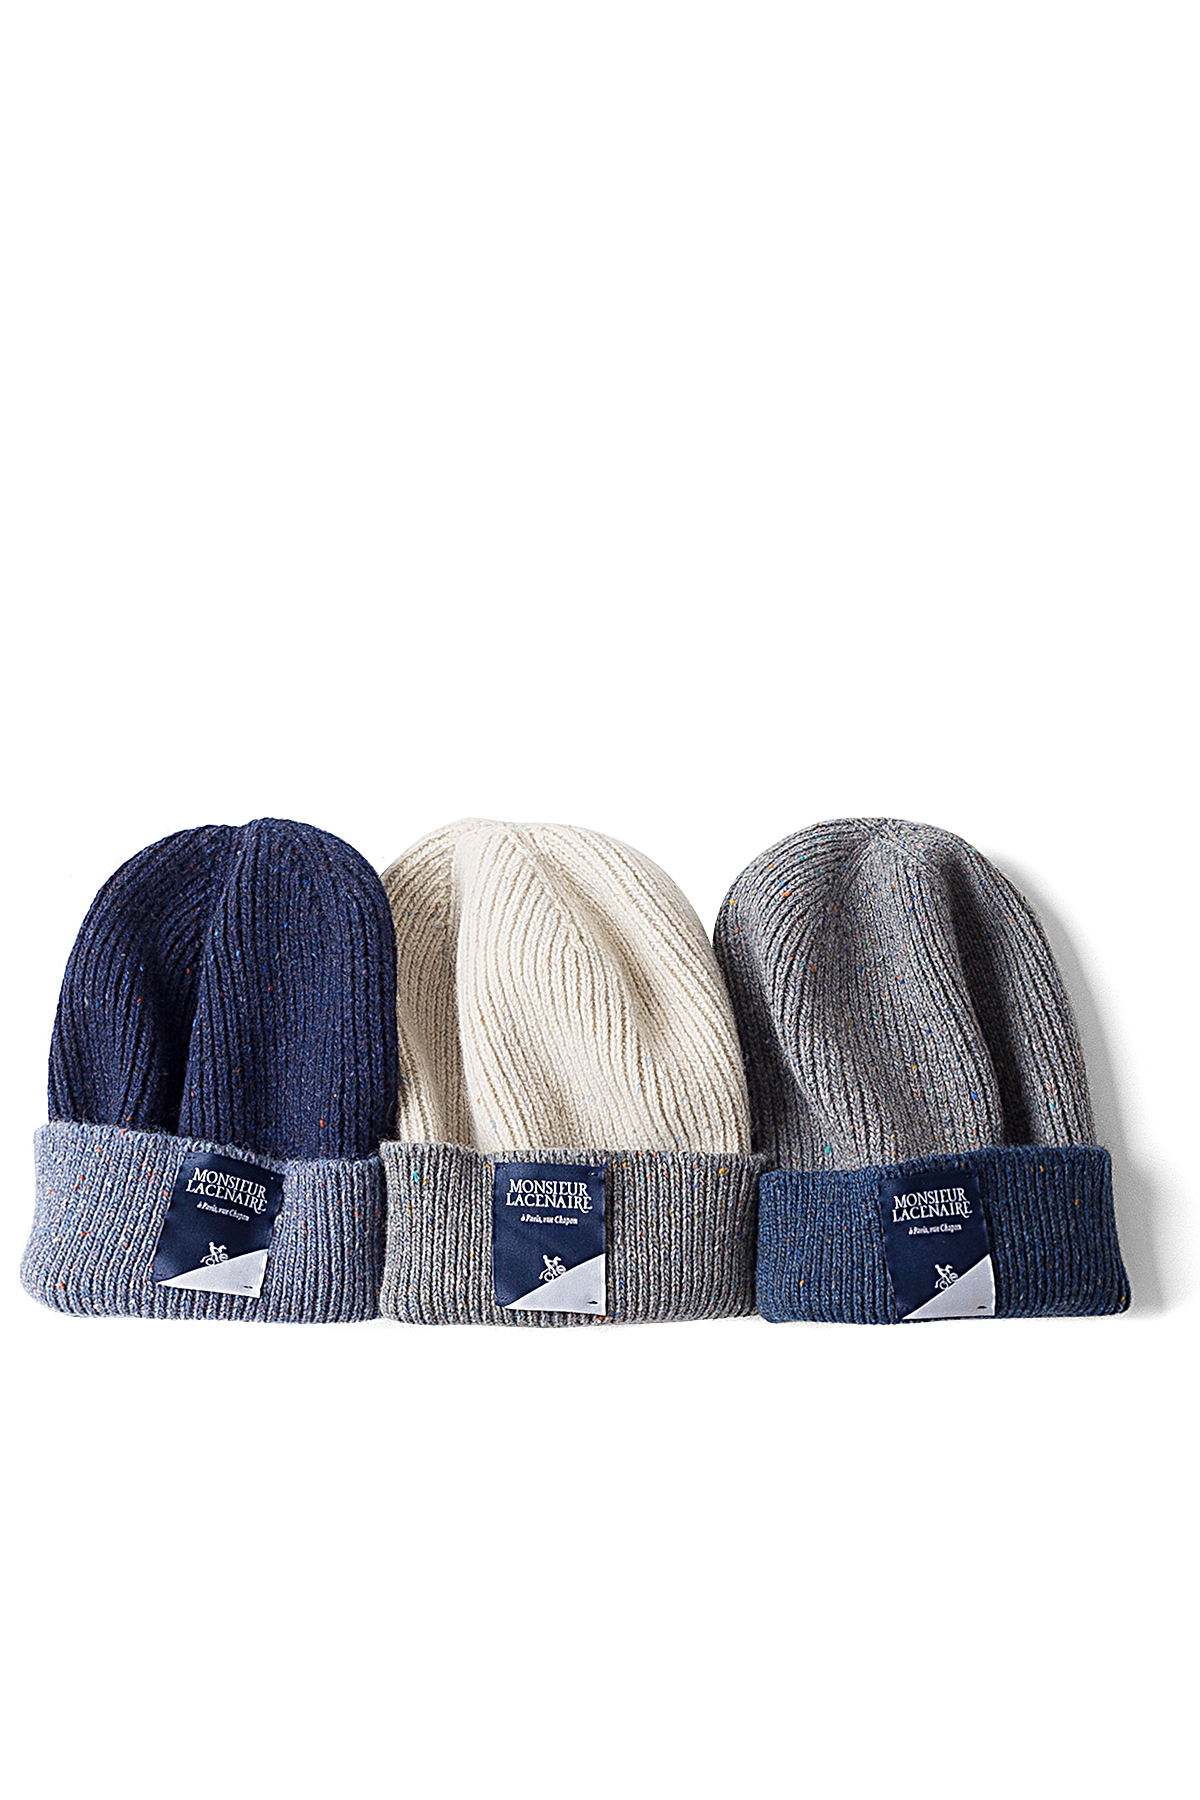 Monsieur Lacenaire : Knitted Hat (3col)